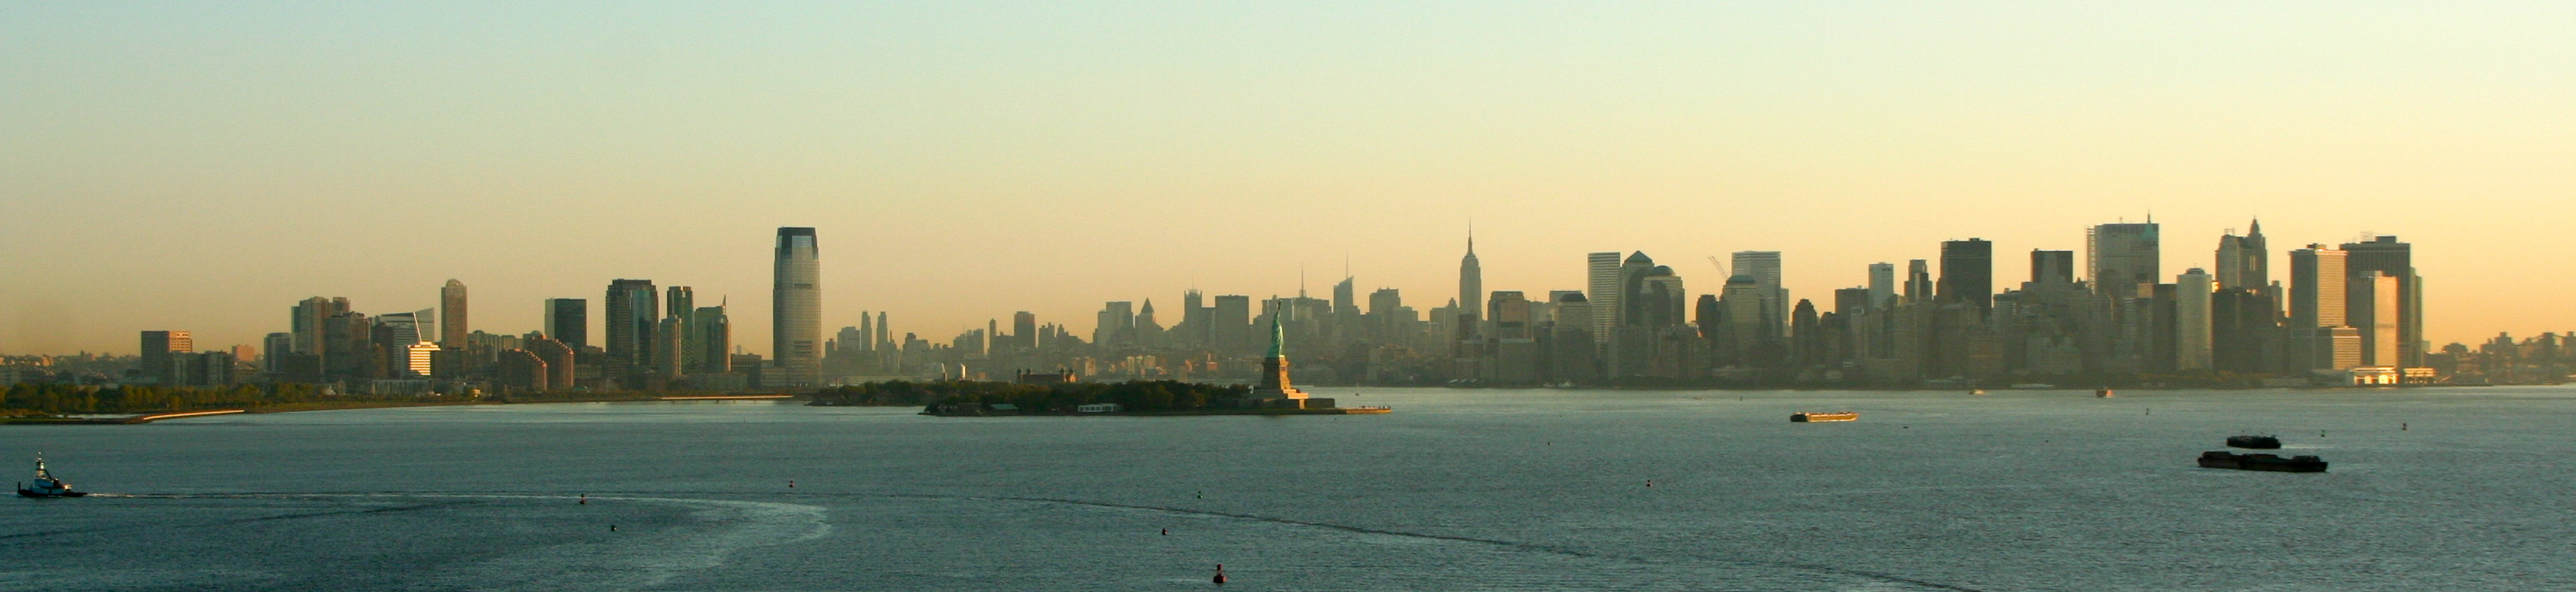 New york city skyline in early morning